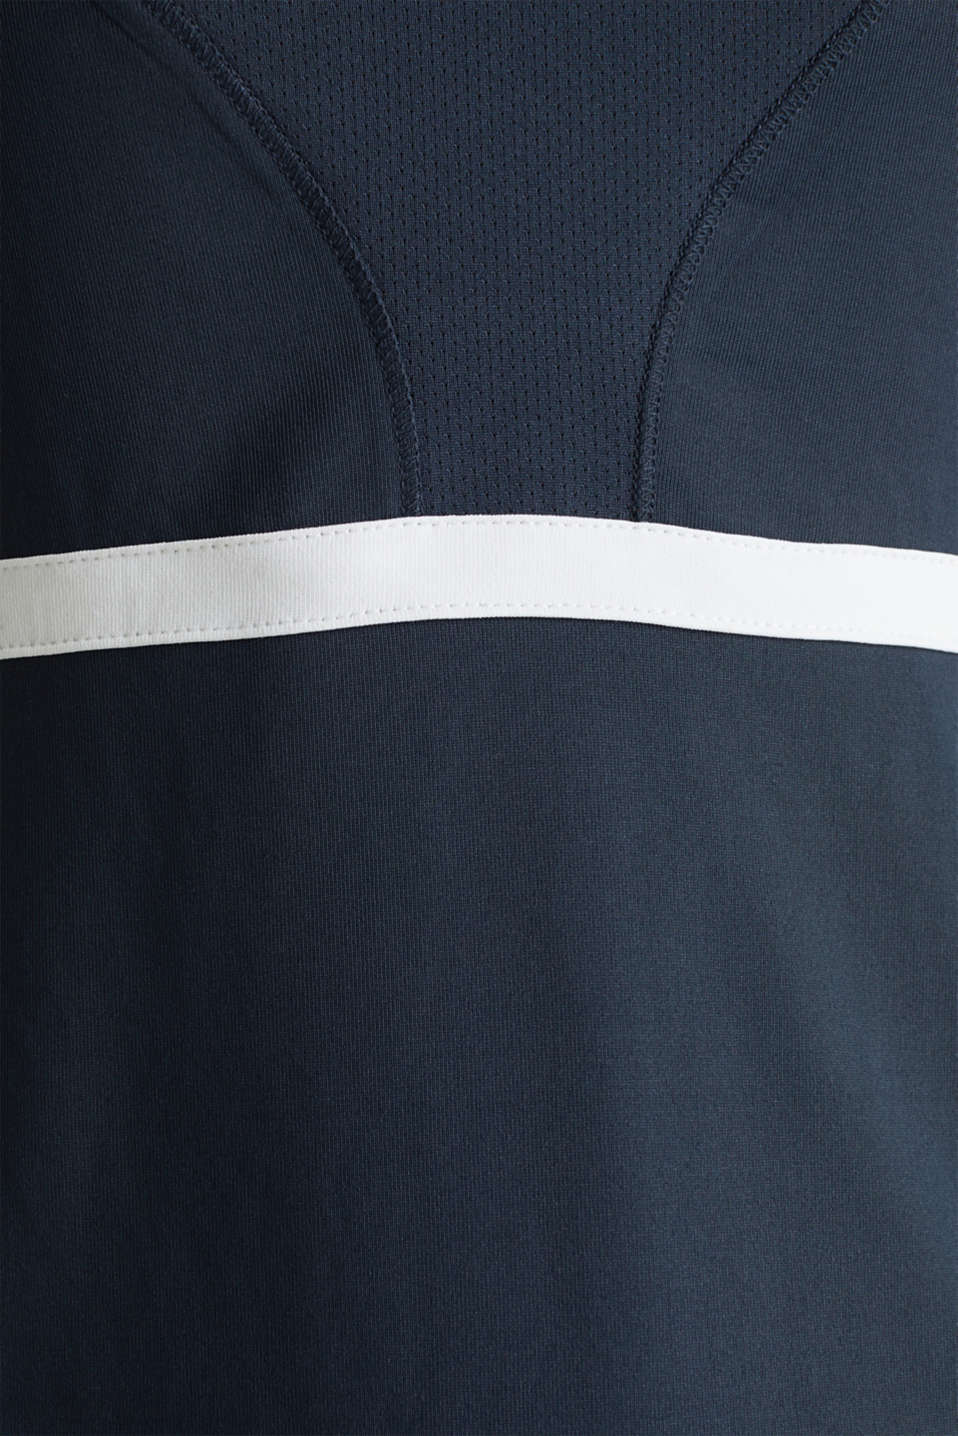 2-in-1 top with bustier, E-DRY, NAVY 2, detail image number 2